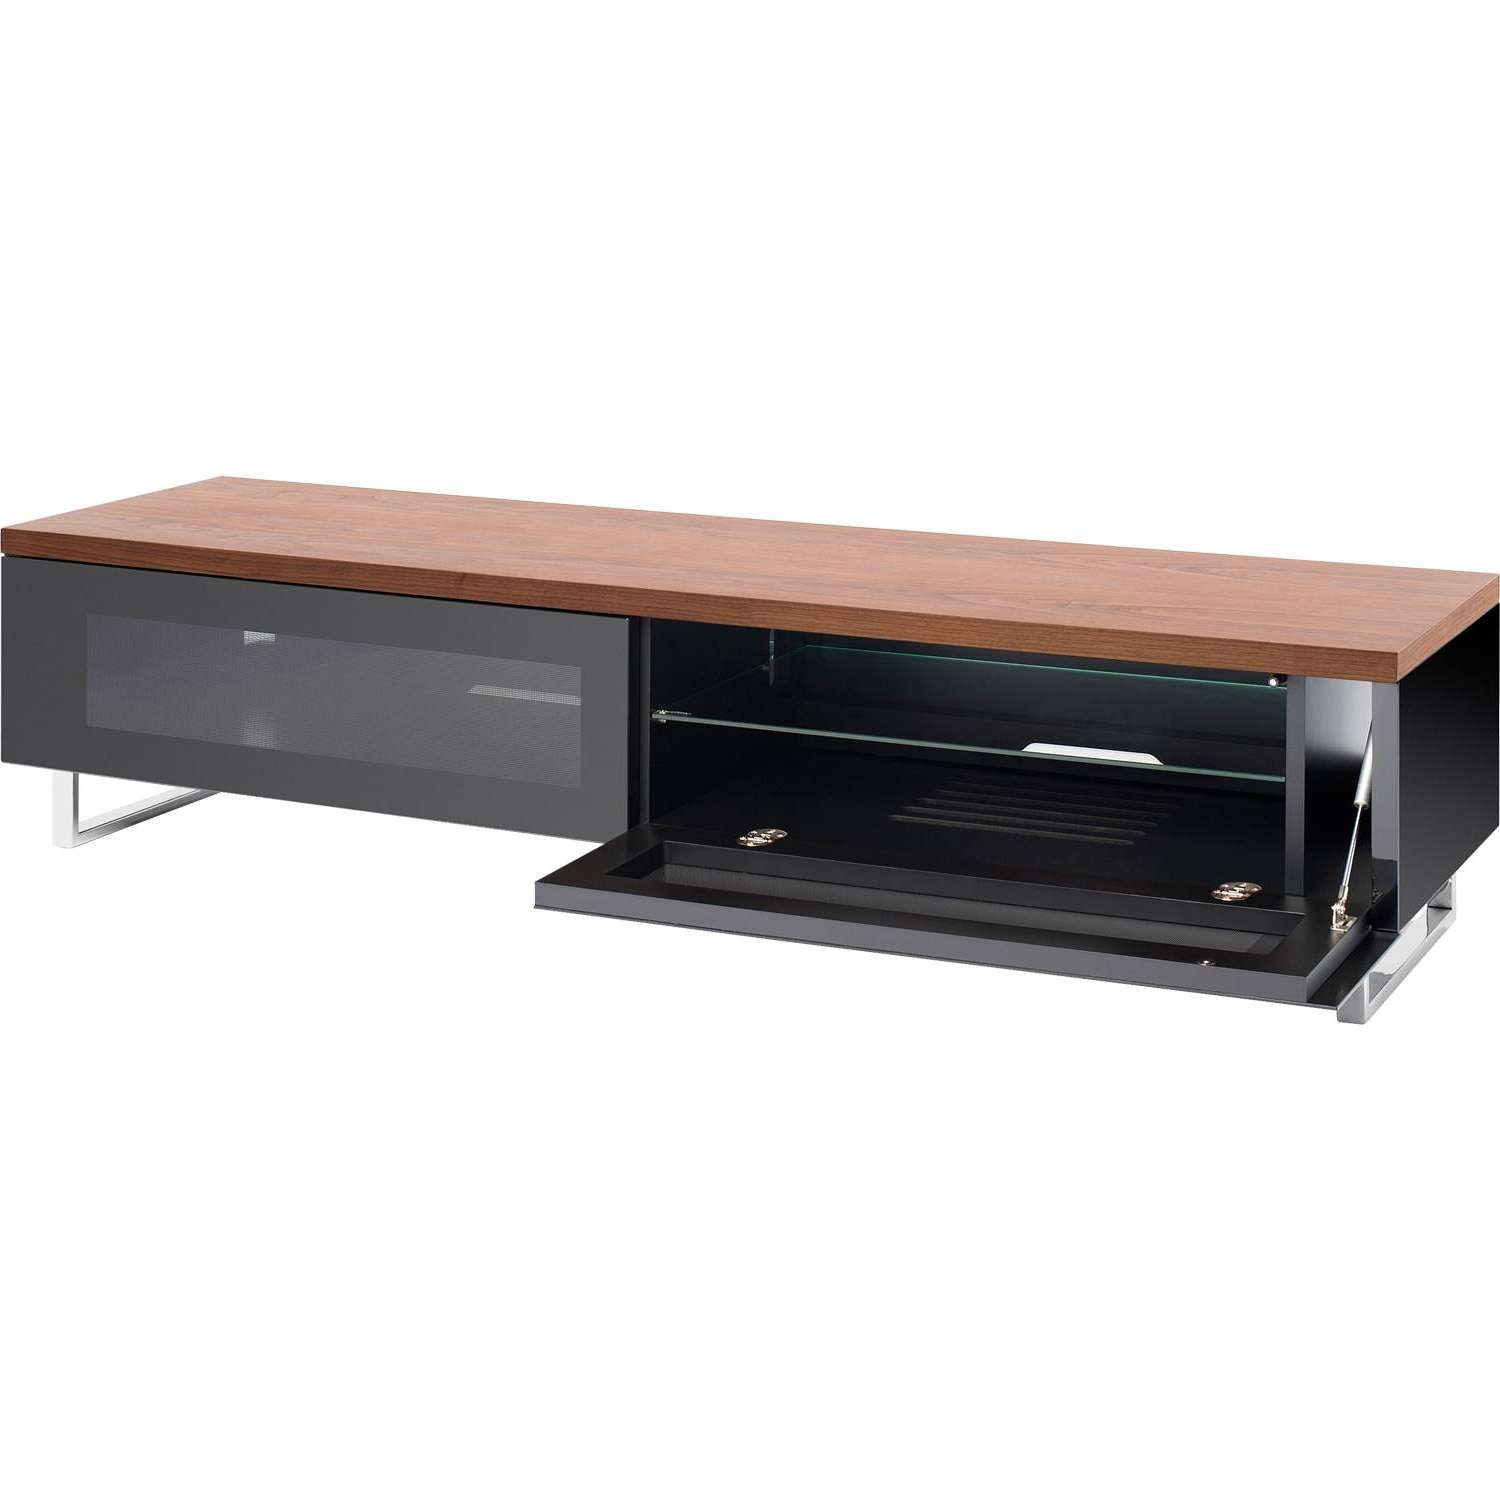 Techlink Panorama Pm160w Piano Black & Walunt Tv Stand For Up To Inside Techlink Pm160w Panorama Tv Stands (View 3 of 15)